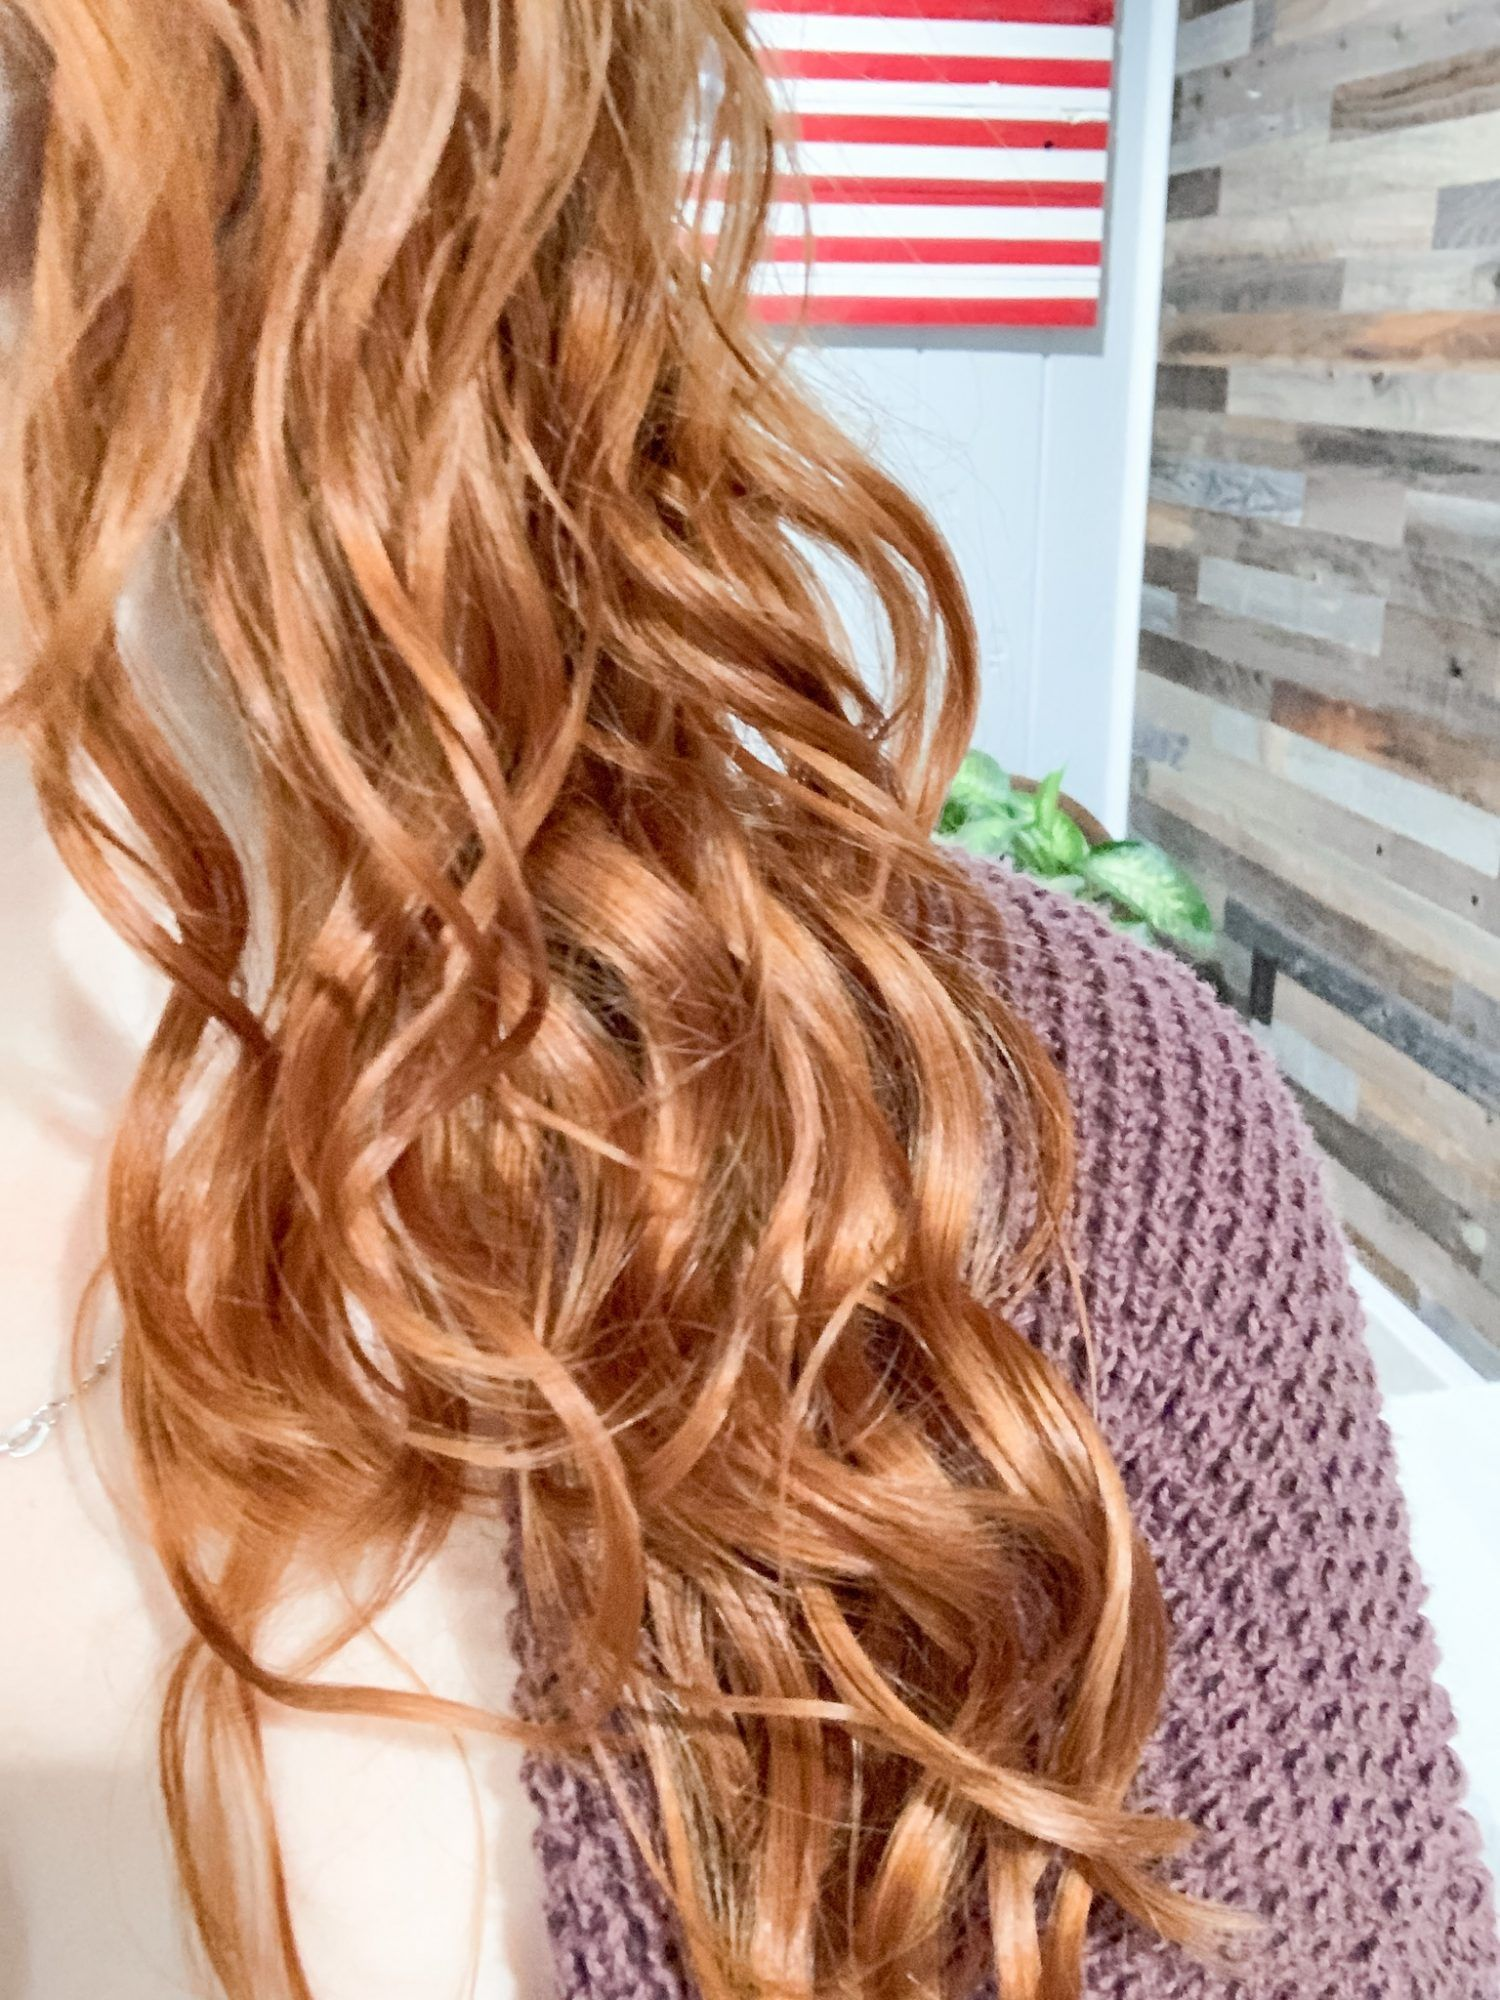 Hair Care Routine 2B 2C Hair (Curly Girl Method) Curly